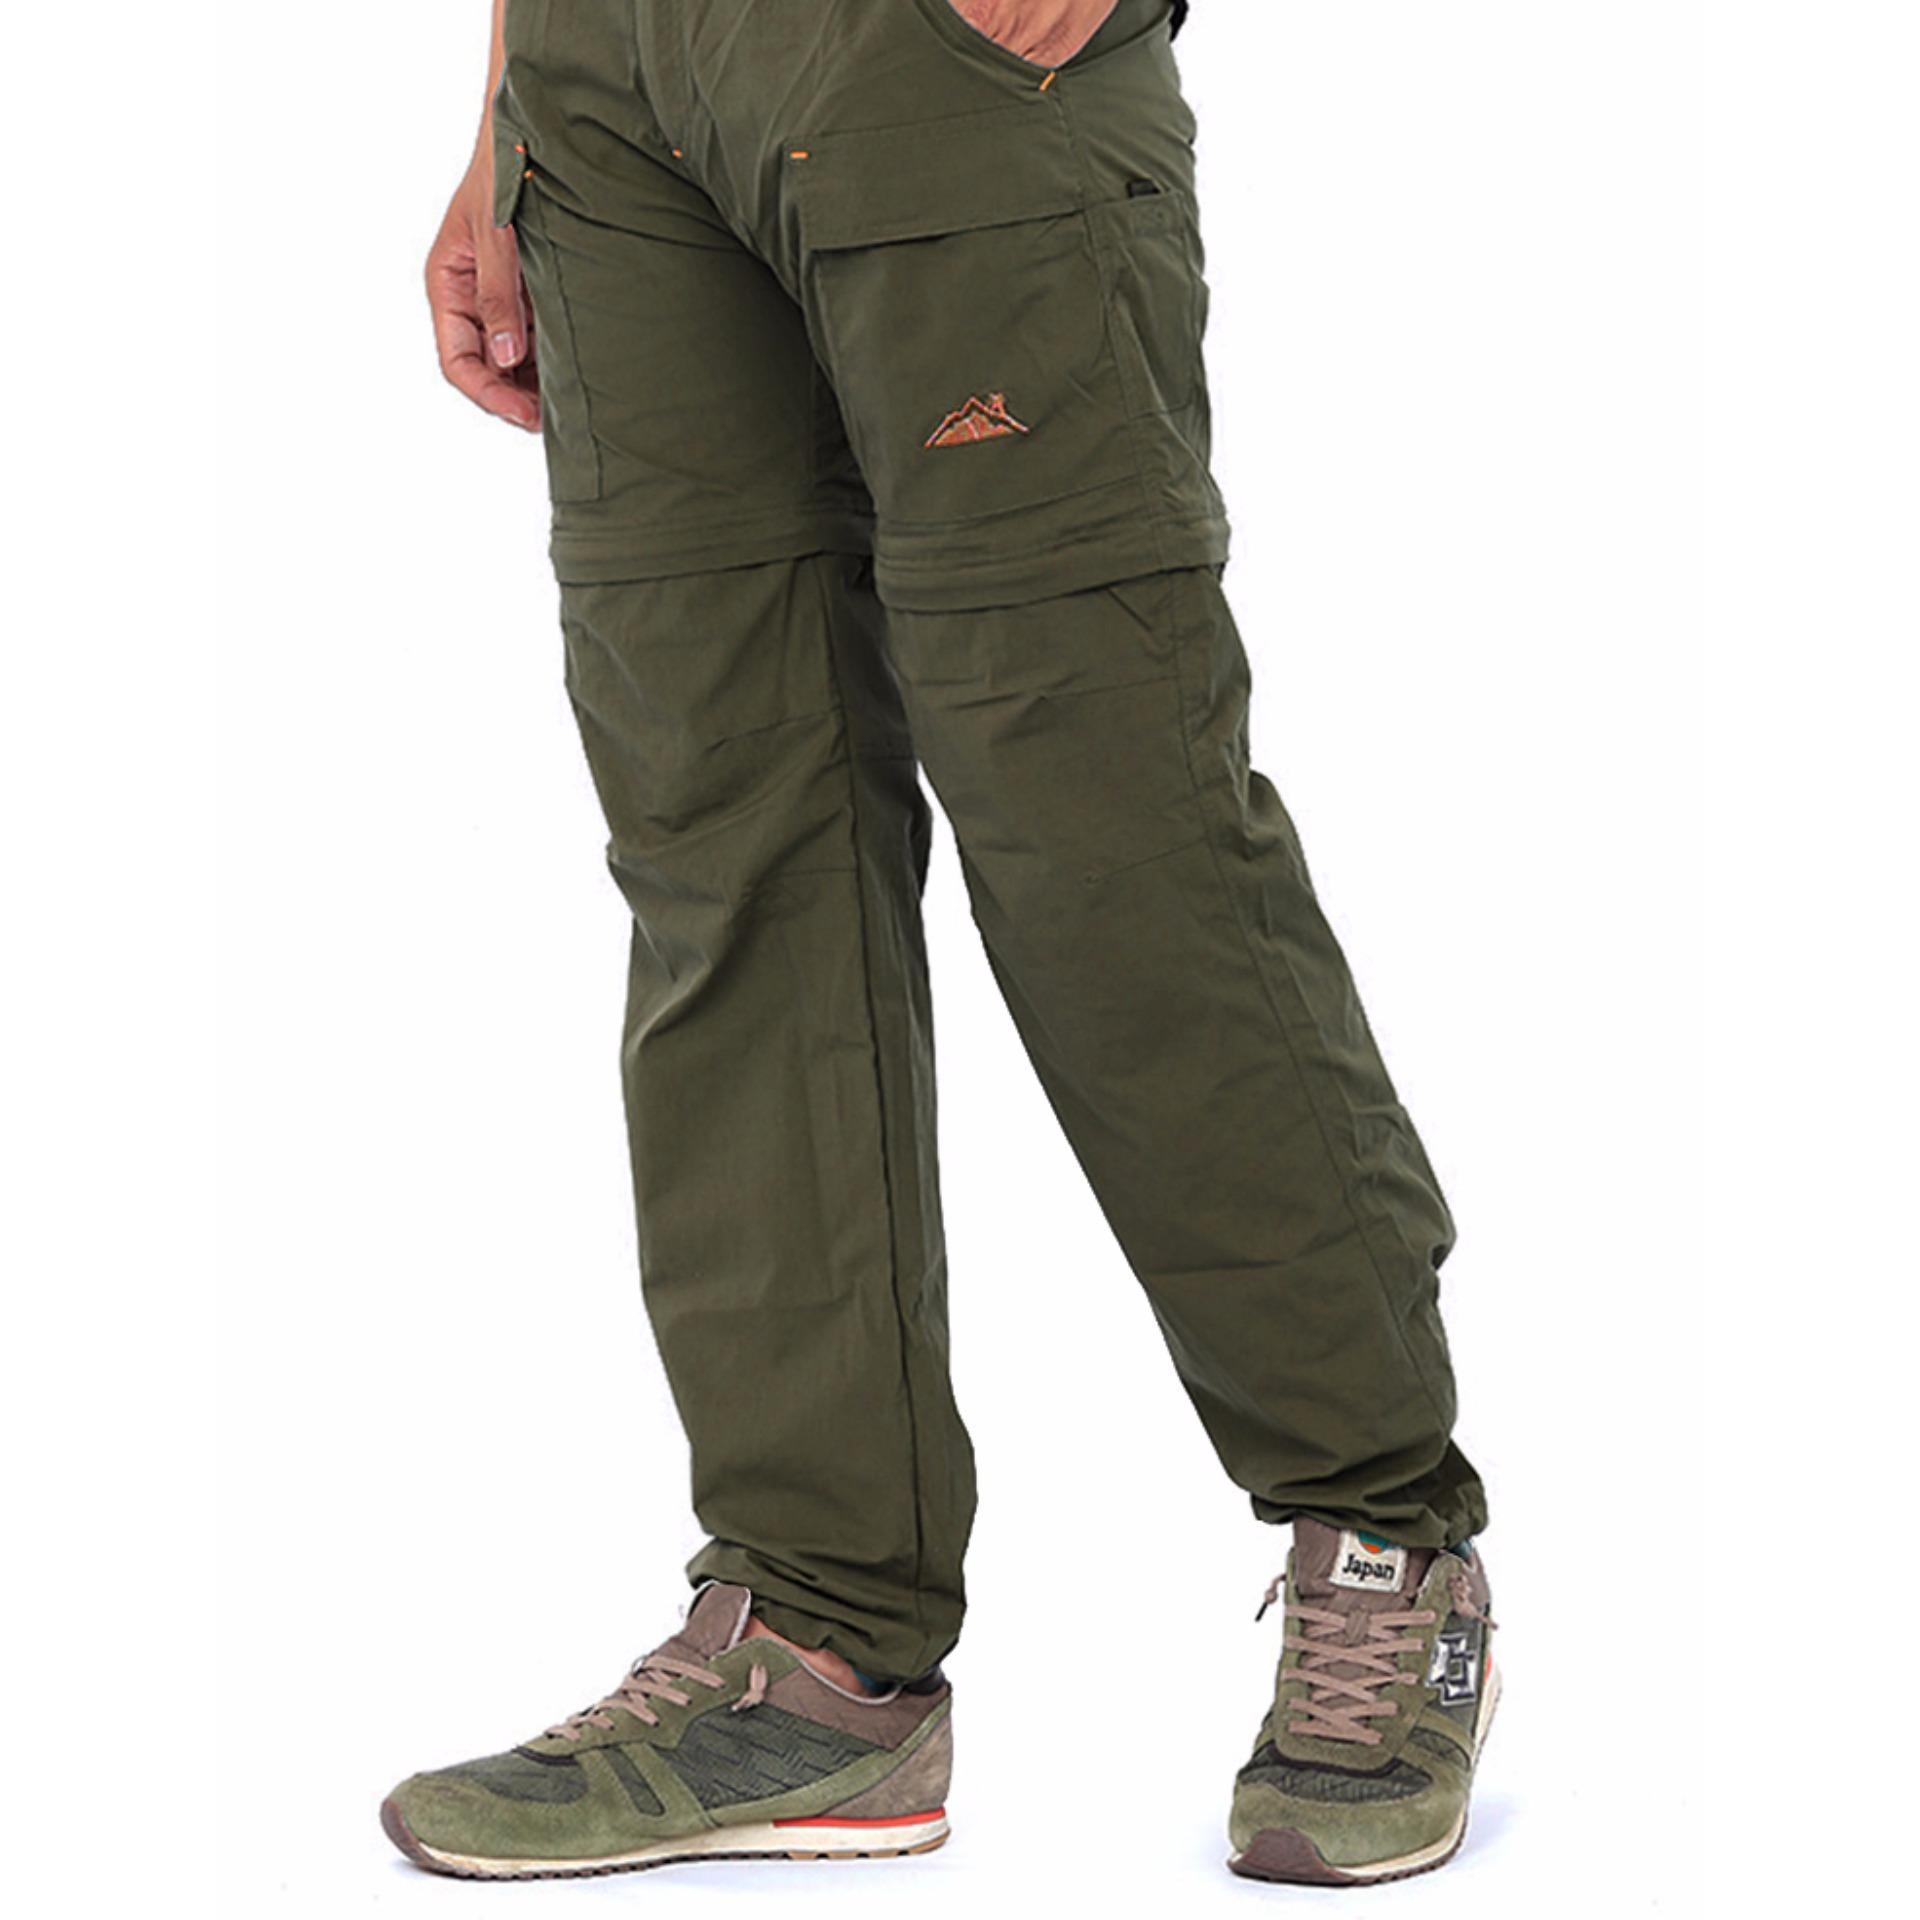 Mua Men S Quick Dry Outdoor Removable Pants Alayna Rẻ